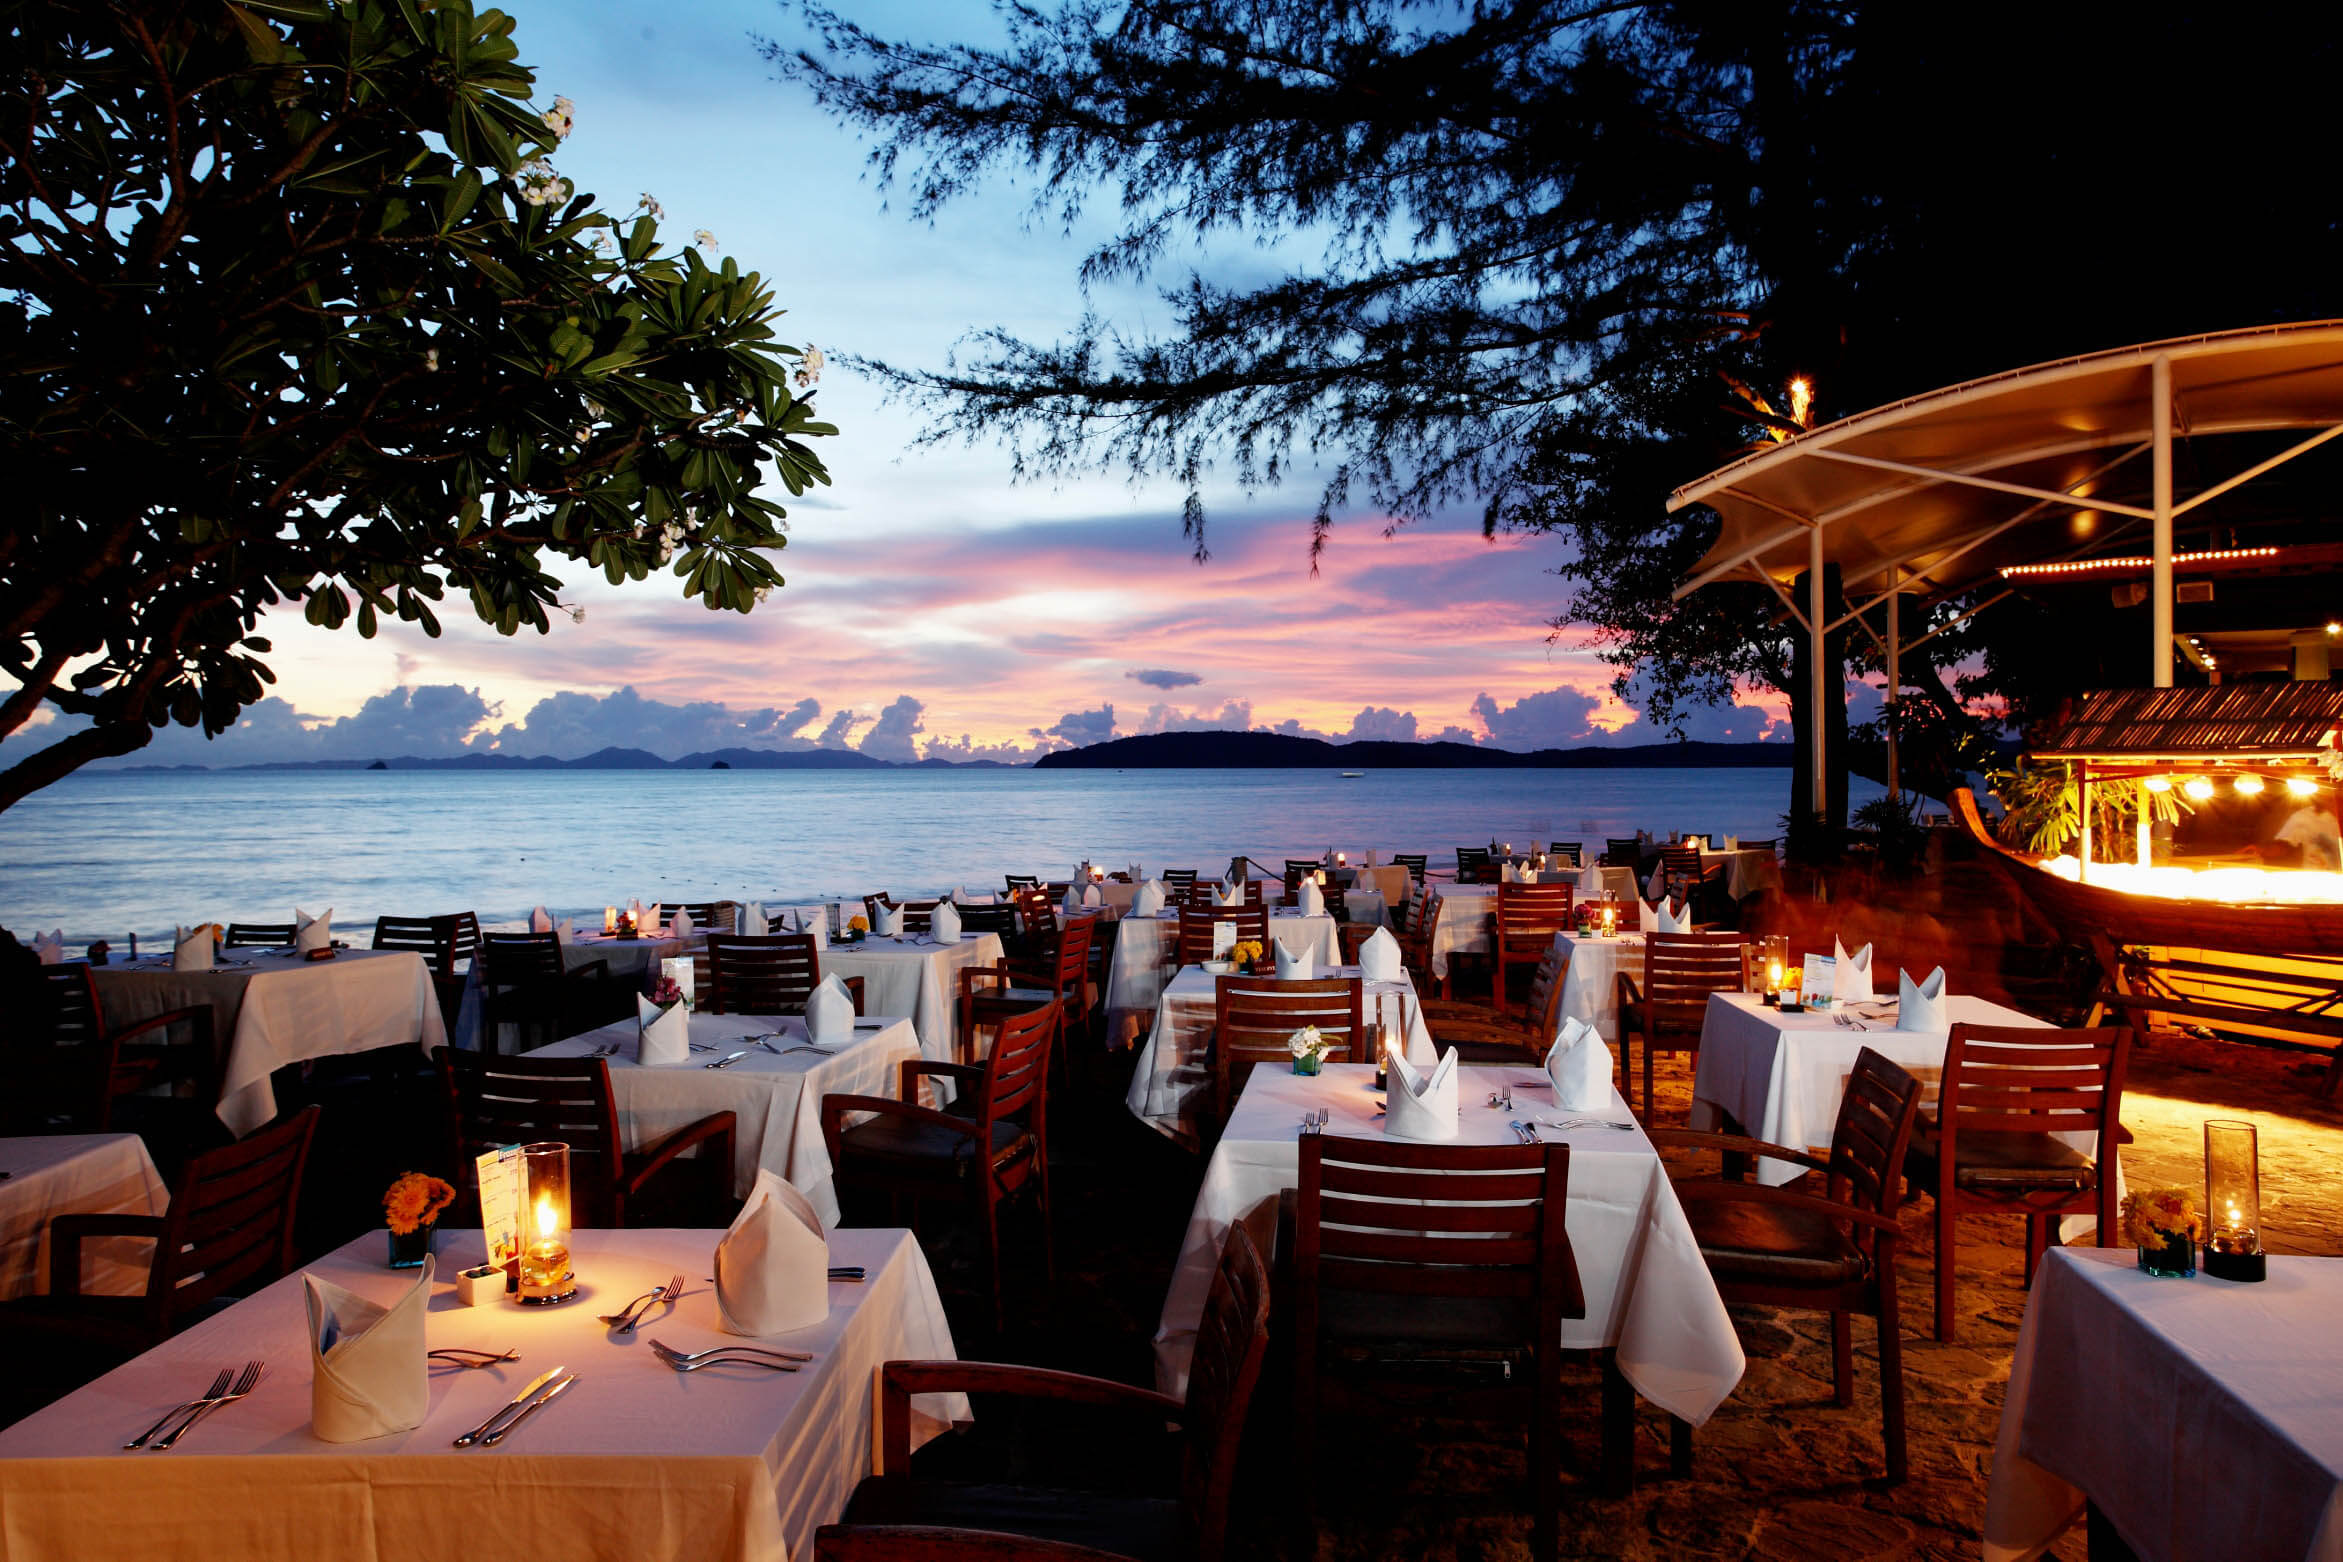 one of the best restaurants in Krabi